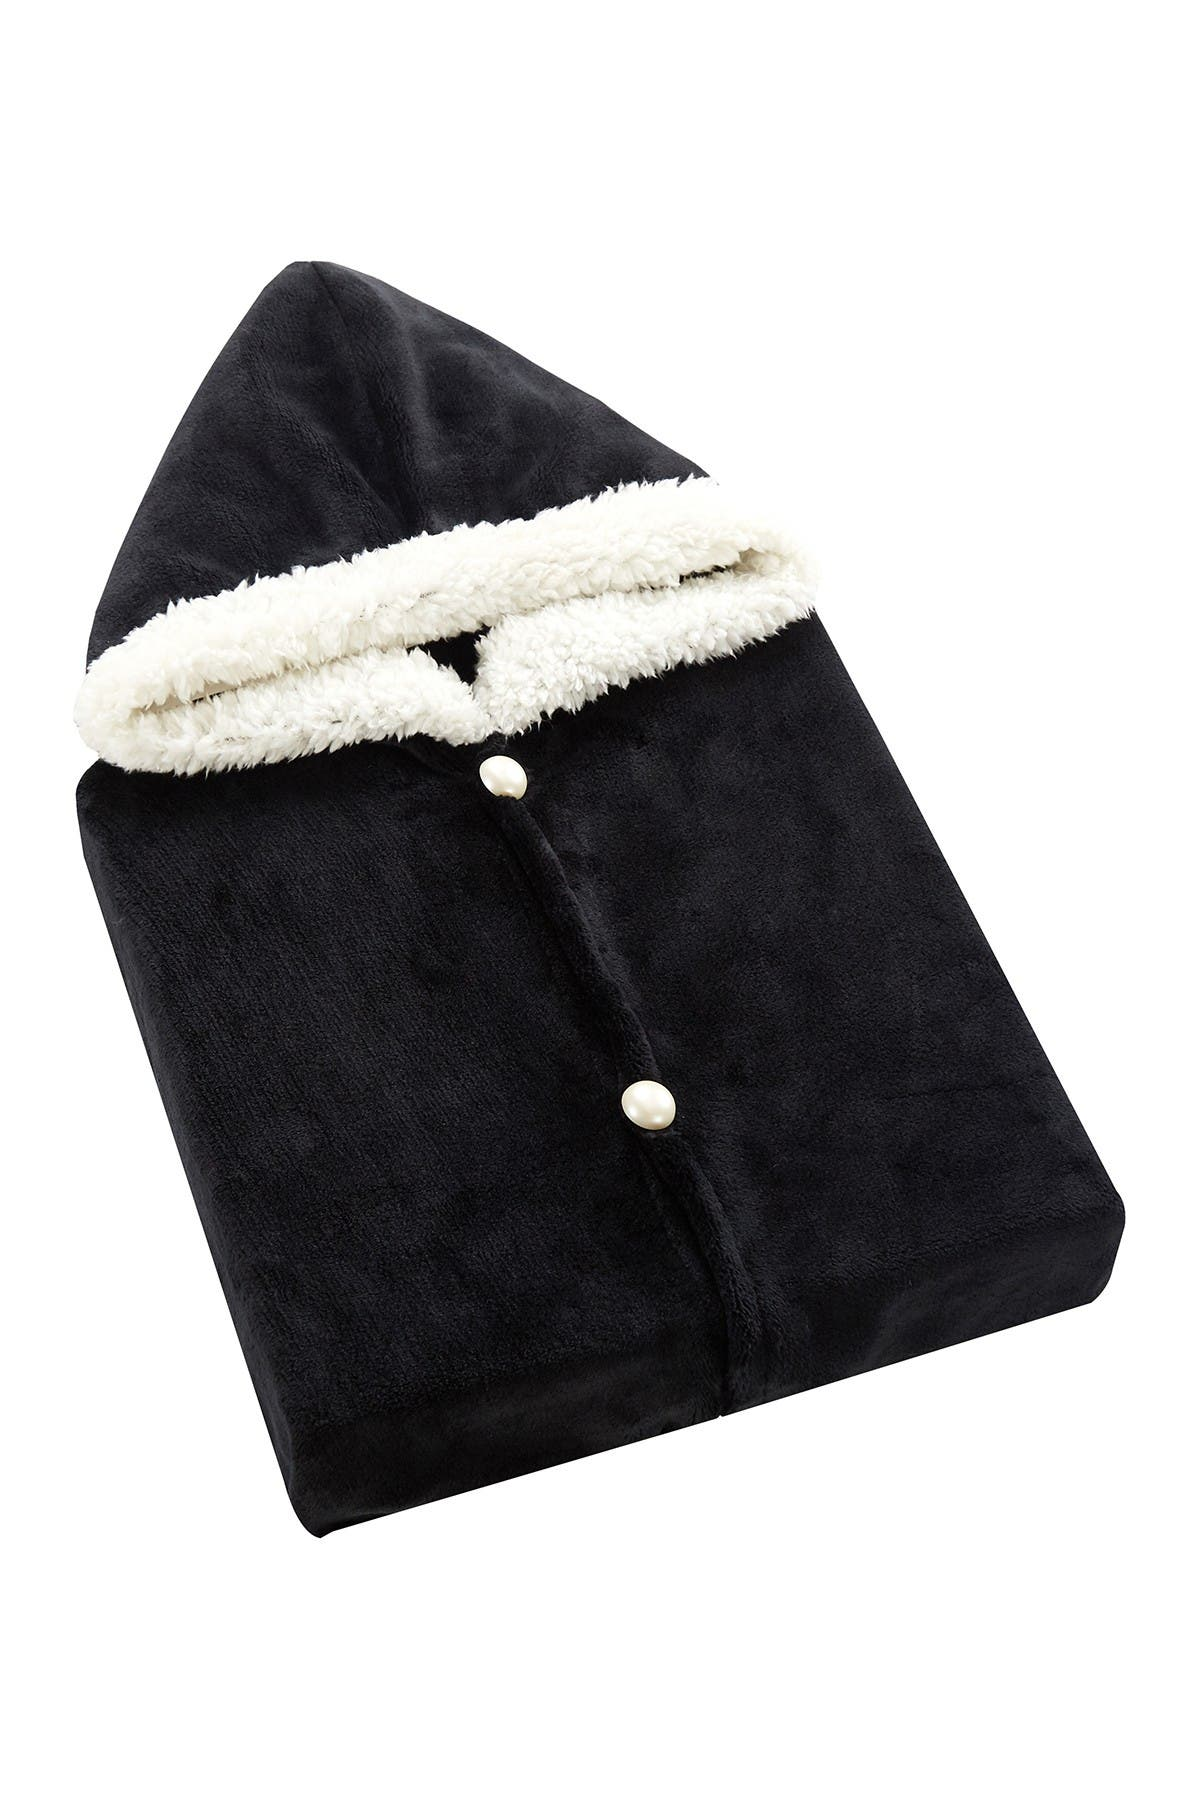 Image of Chic Home Bedding Aella Faux Shearling Trim Flannel Snuggle Hoodie - Black